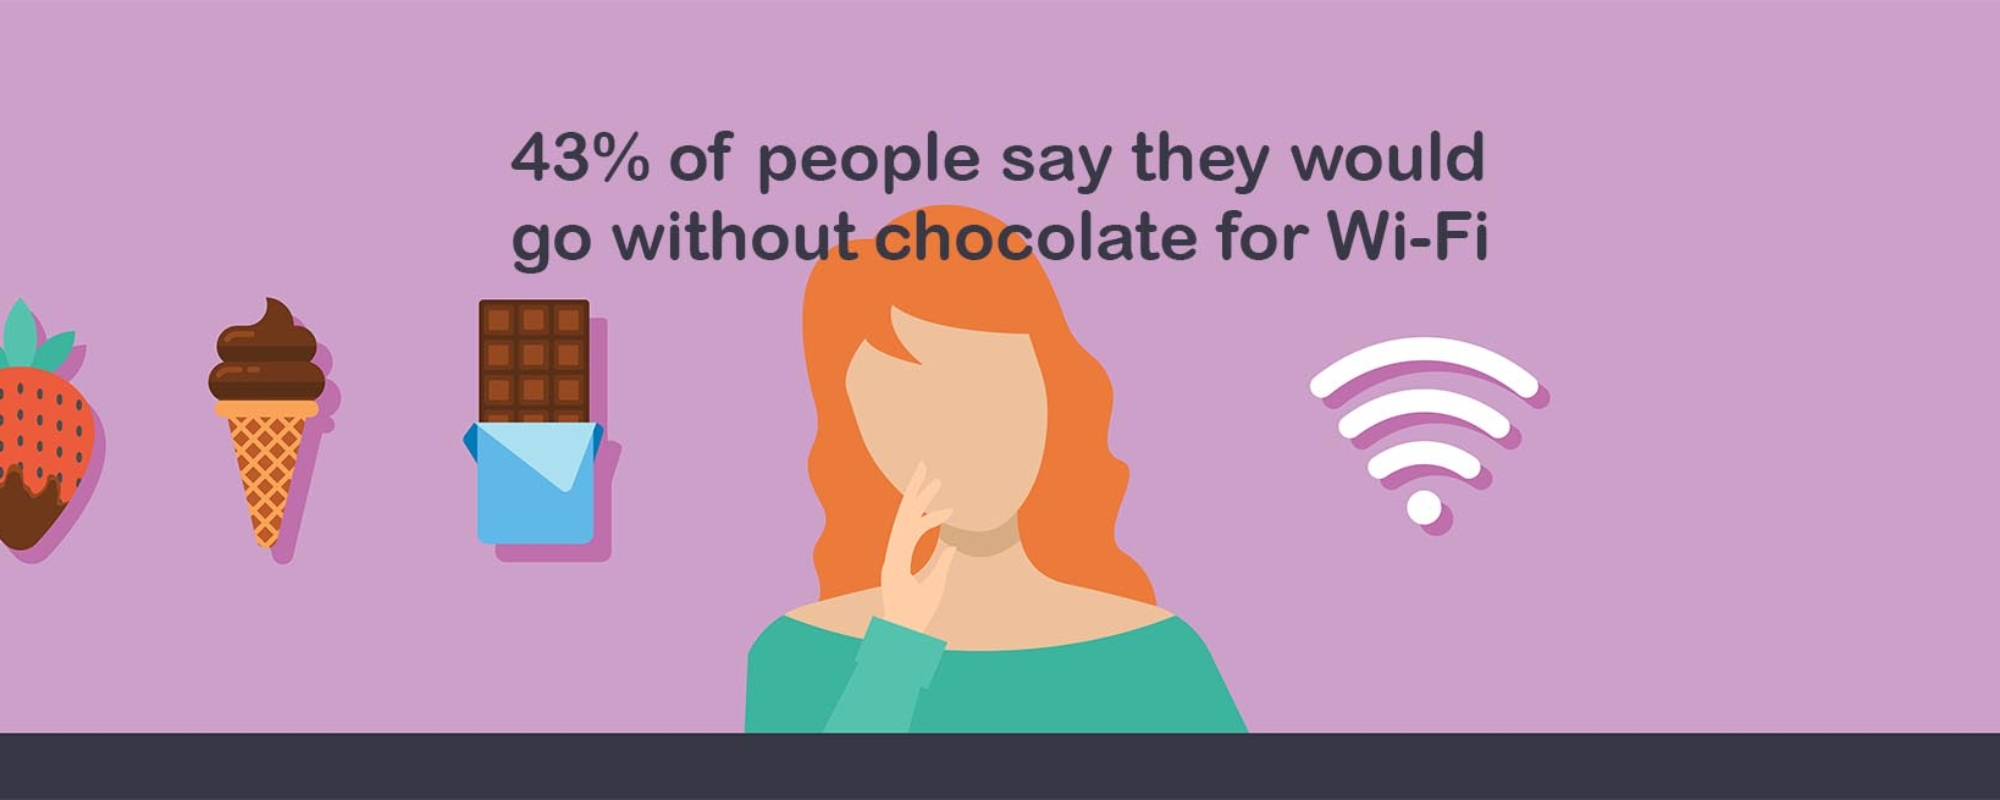 43% of people say they would go without chocolate for Wi-Fi